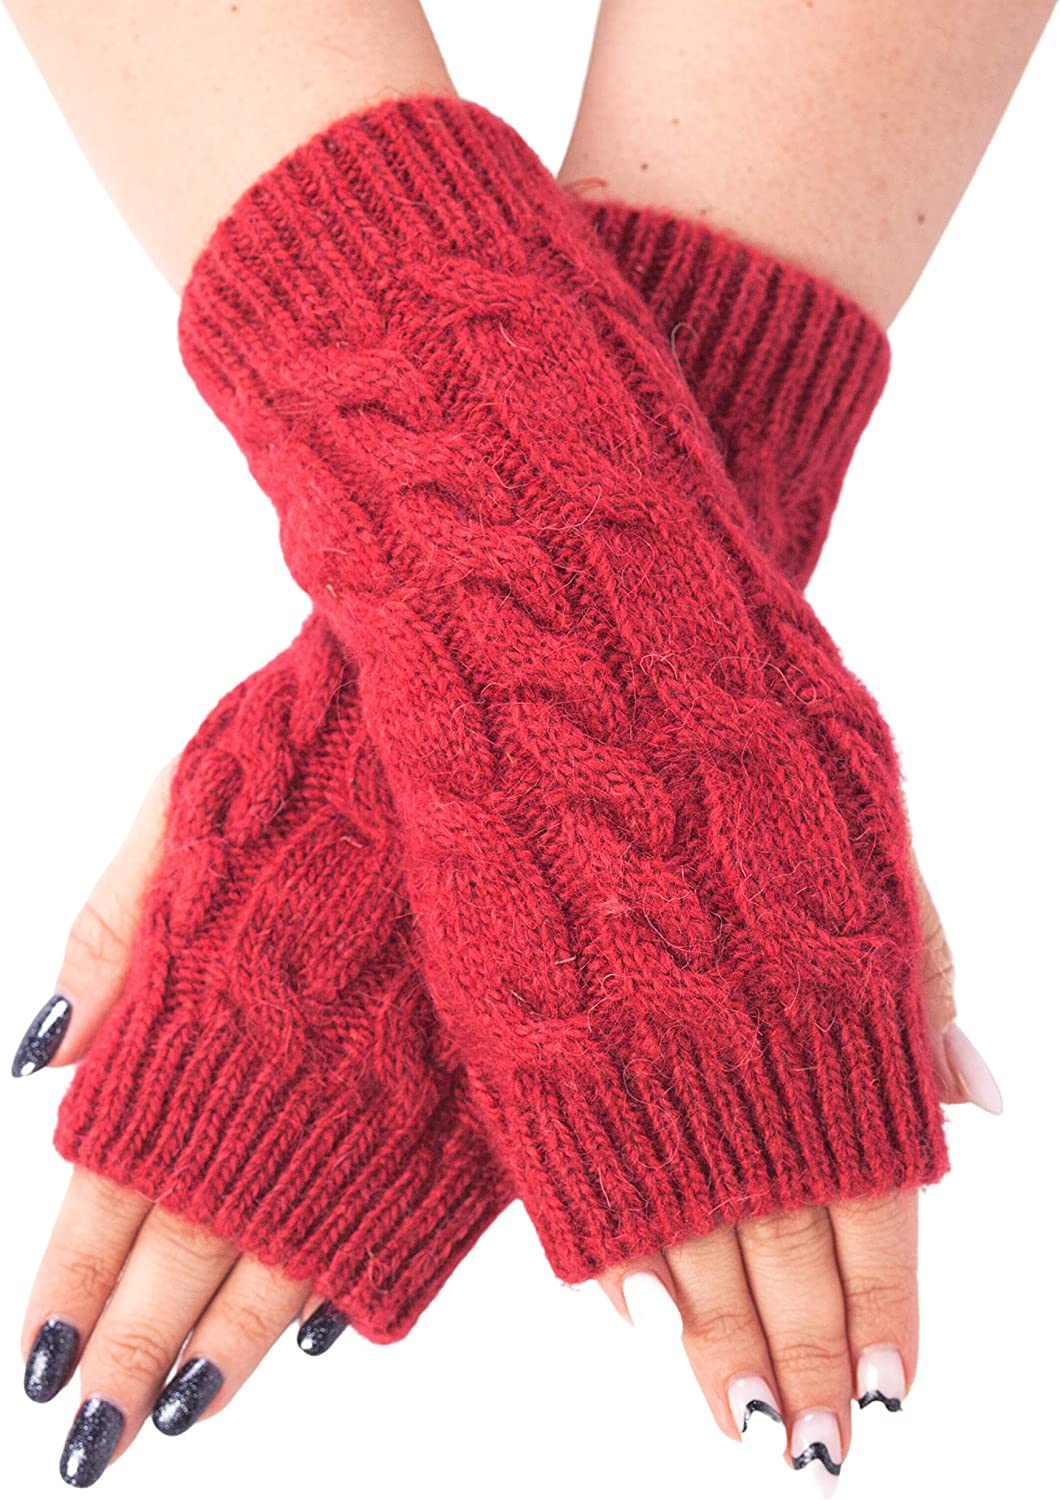 Fingerless Gloves Arm Warmers Wool Knitted Mittens for Women Long Fingerless Thumb Hole Knit Arm Warmers